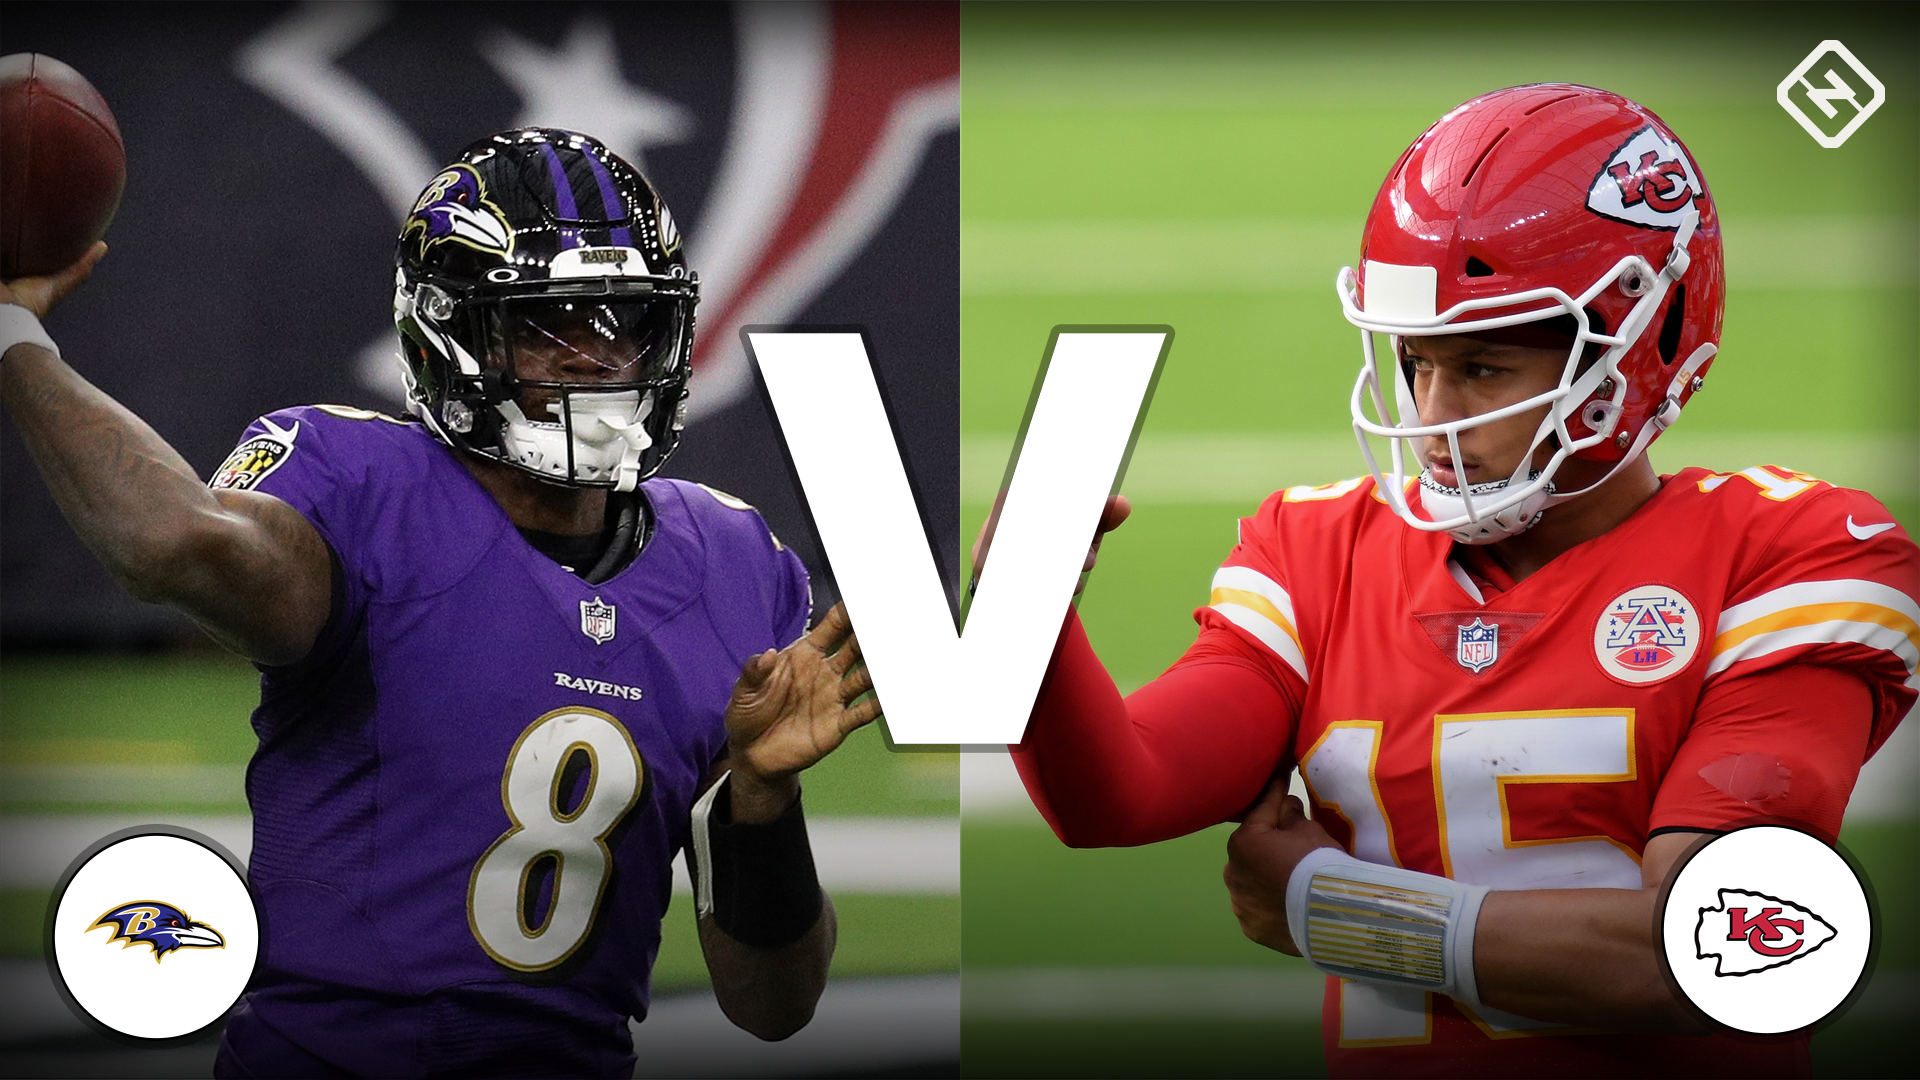 Chiefs vs. Ravens live score, updates, highlights from NFL's 'Monday Night Football' game 1